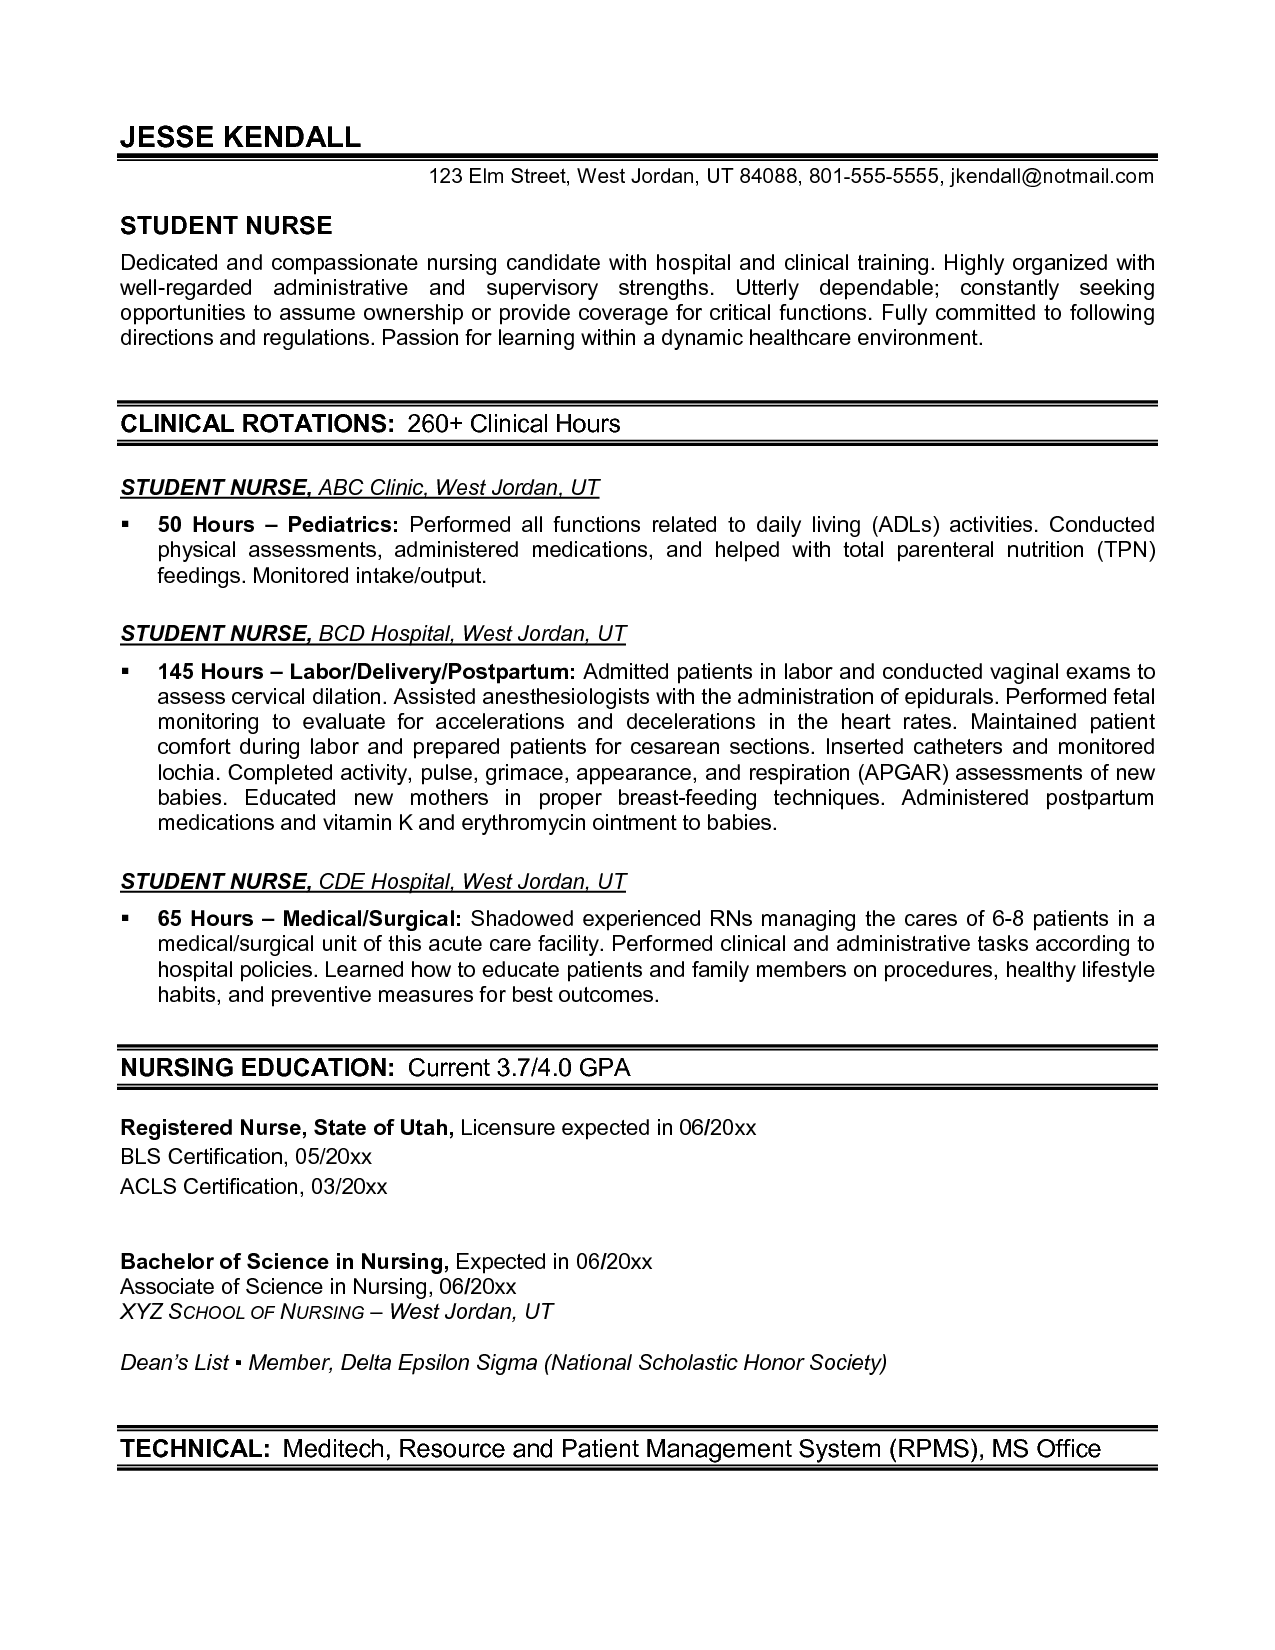 Resume Template Nursing Nursing Pinterest Nursing Resume And